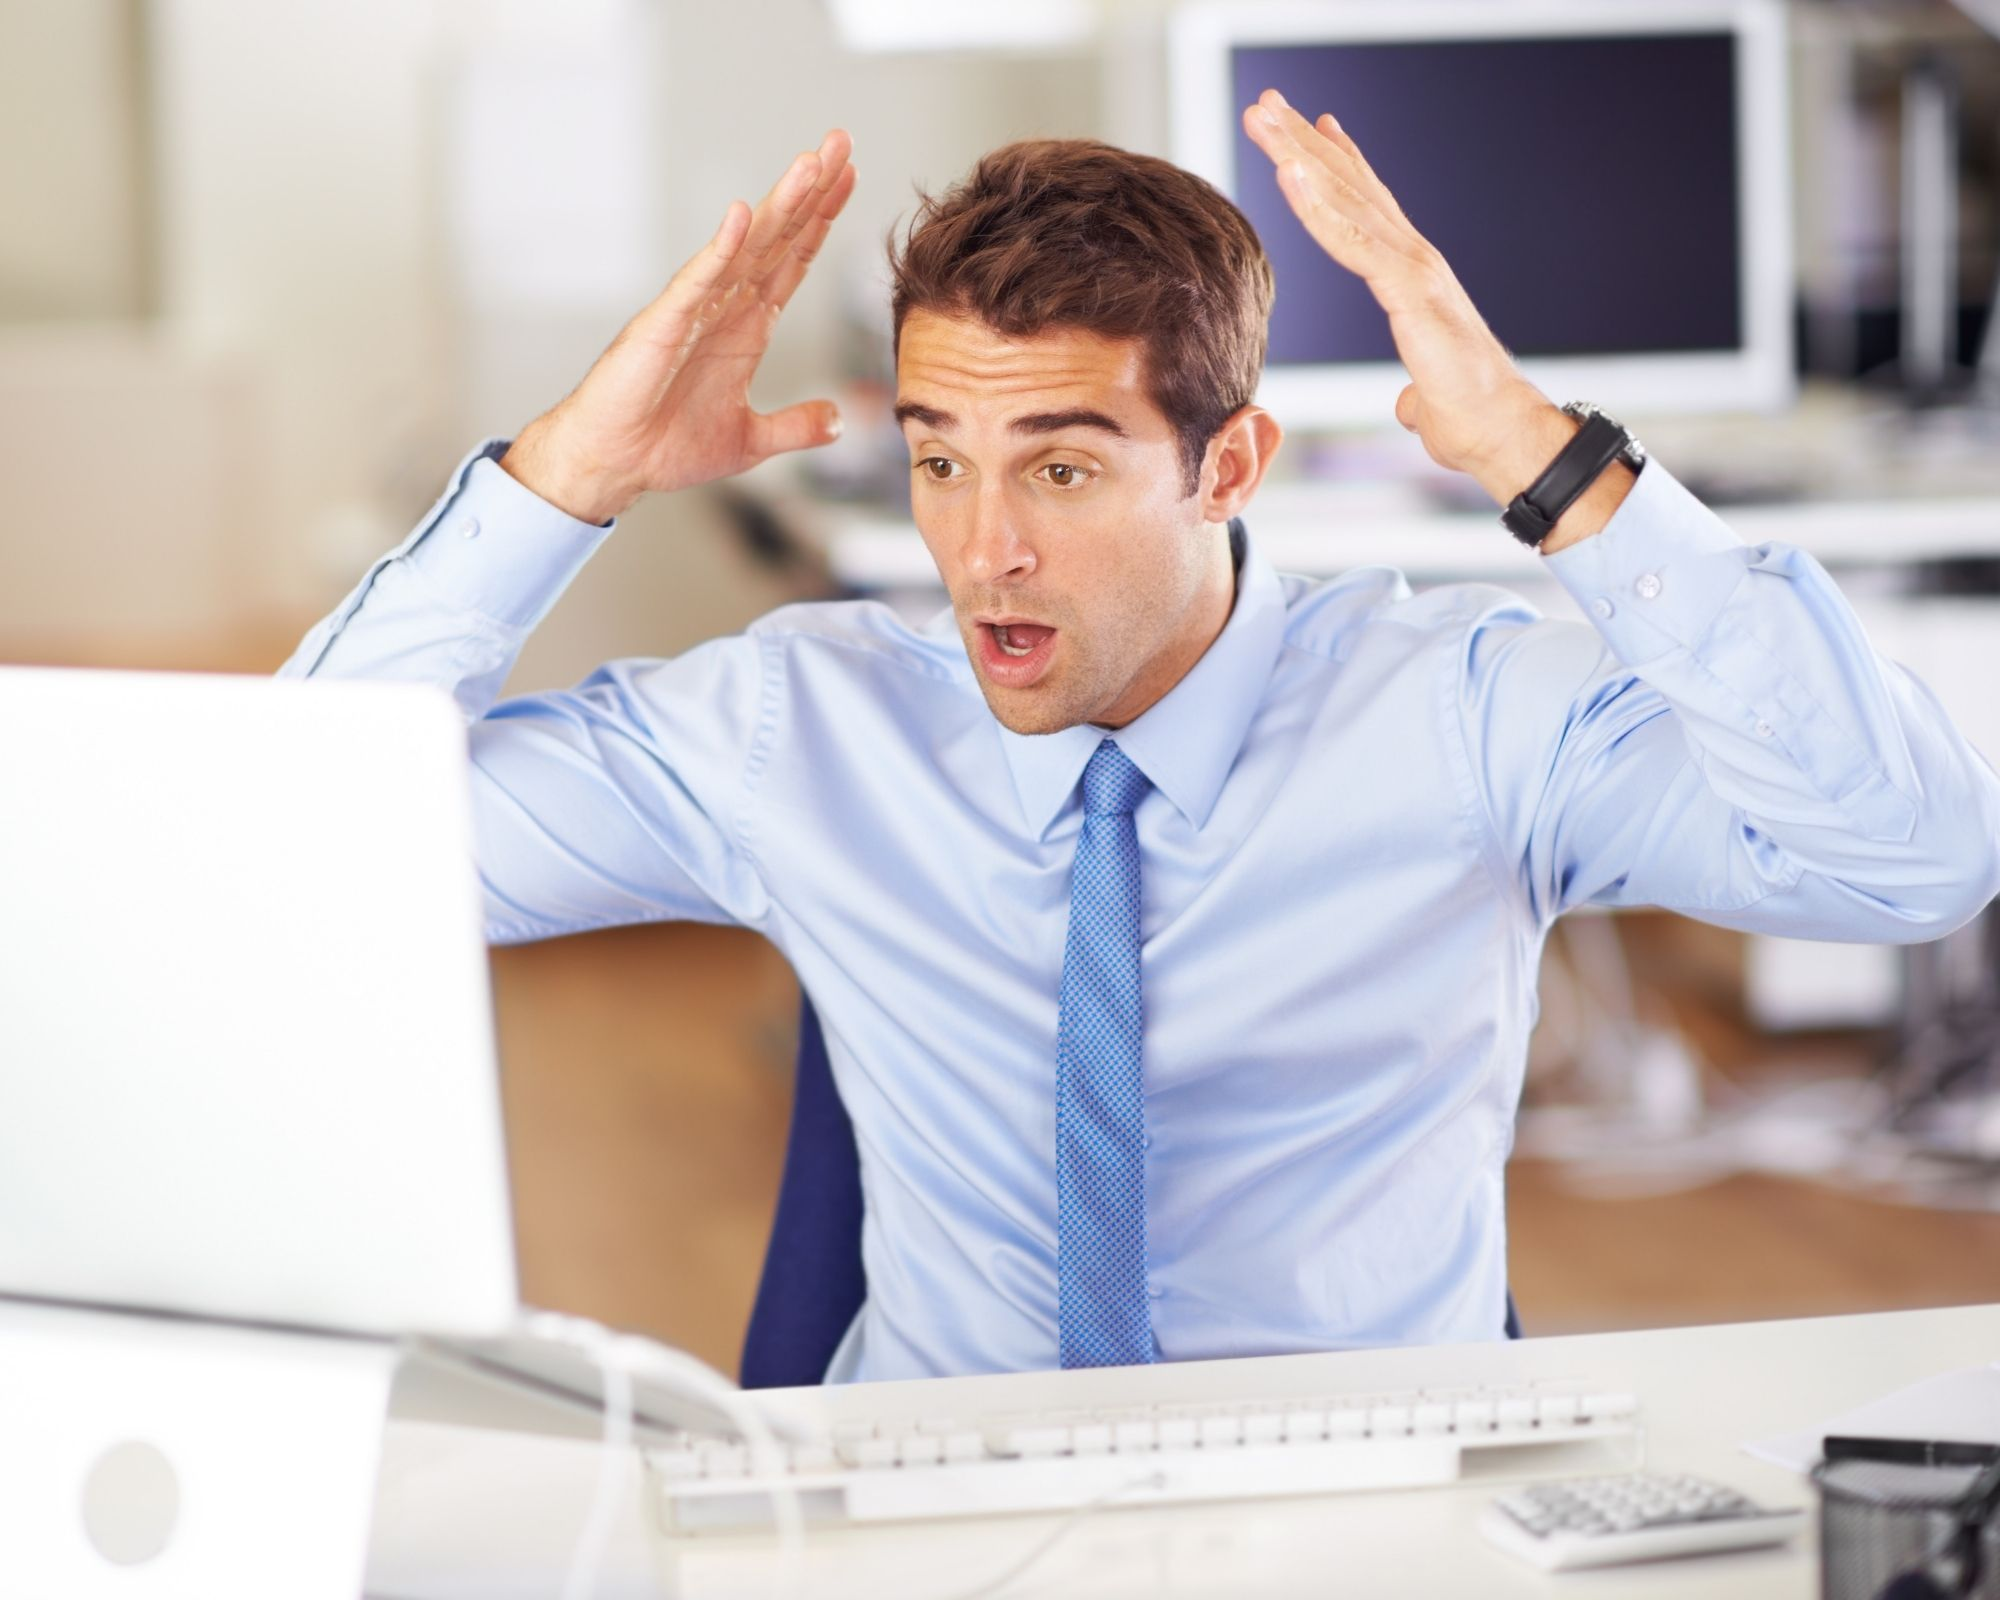 Man at a laptop throwing his hands up in frustration - used to indicate taking care of you is important